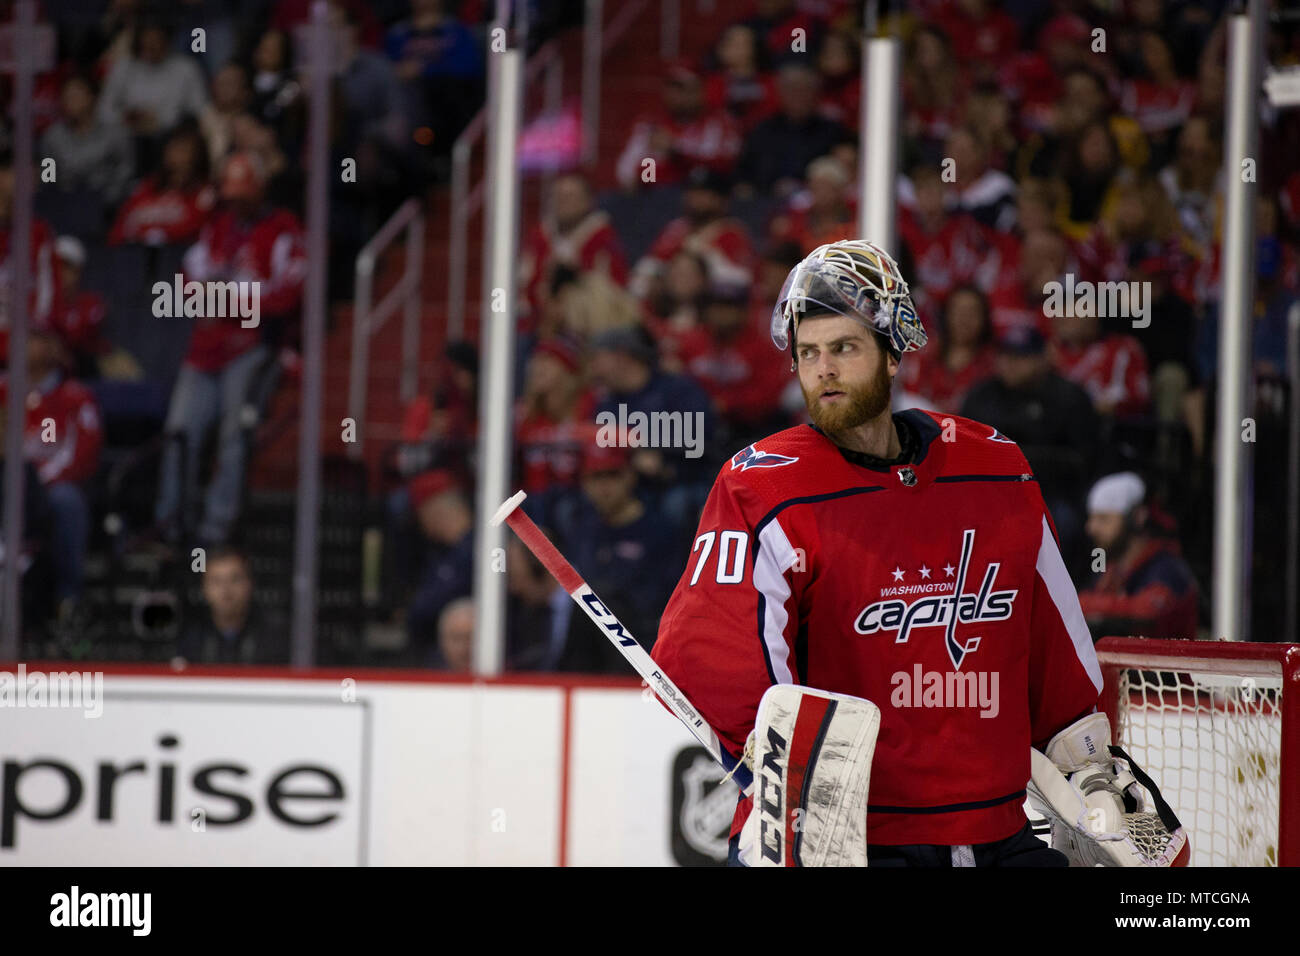 b45817416a7 Nhl Goaltender Stock Photos   Nhl Goaltender Stock Images - Alamy